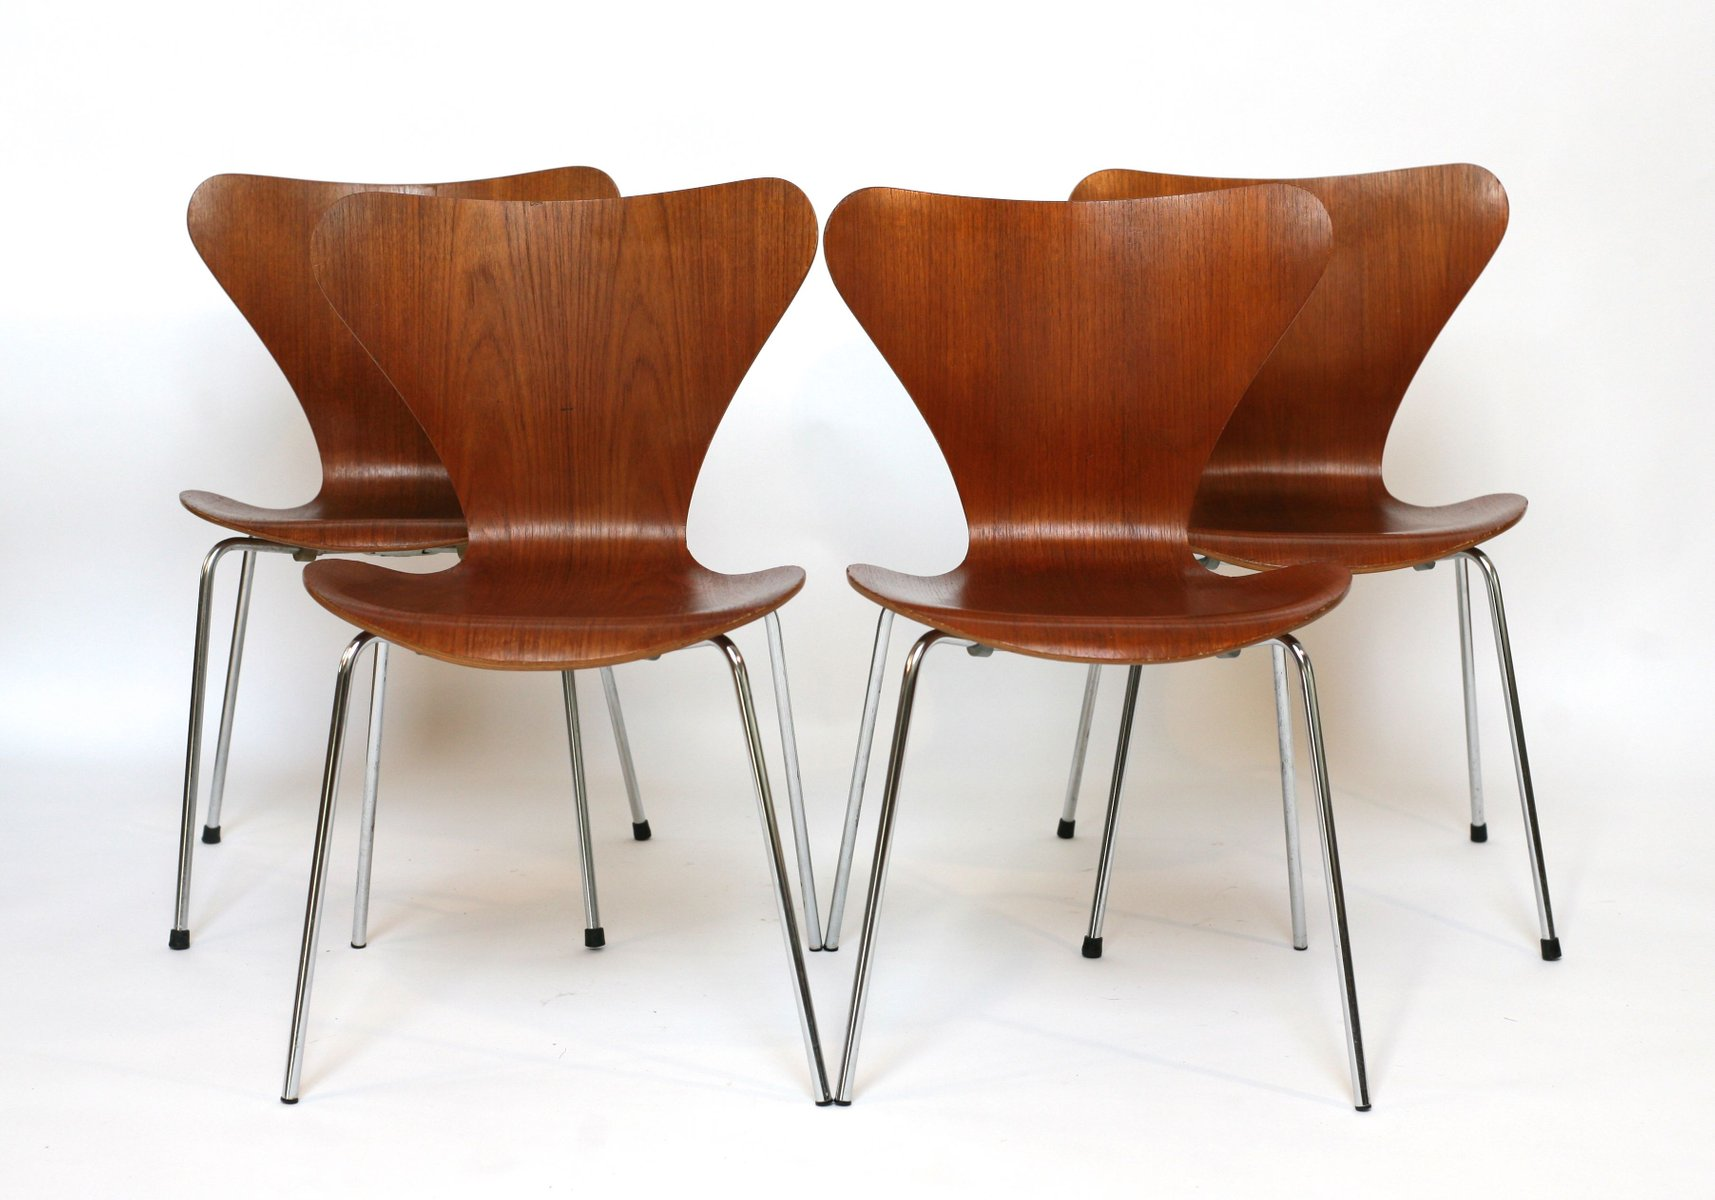 vintage teak st hle von arne jacobsen f r fritz hansen. Black Bedroom Furniture Sets. Home Design Ideas